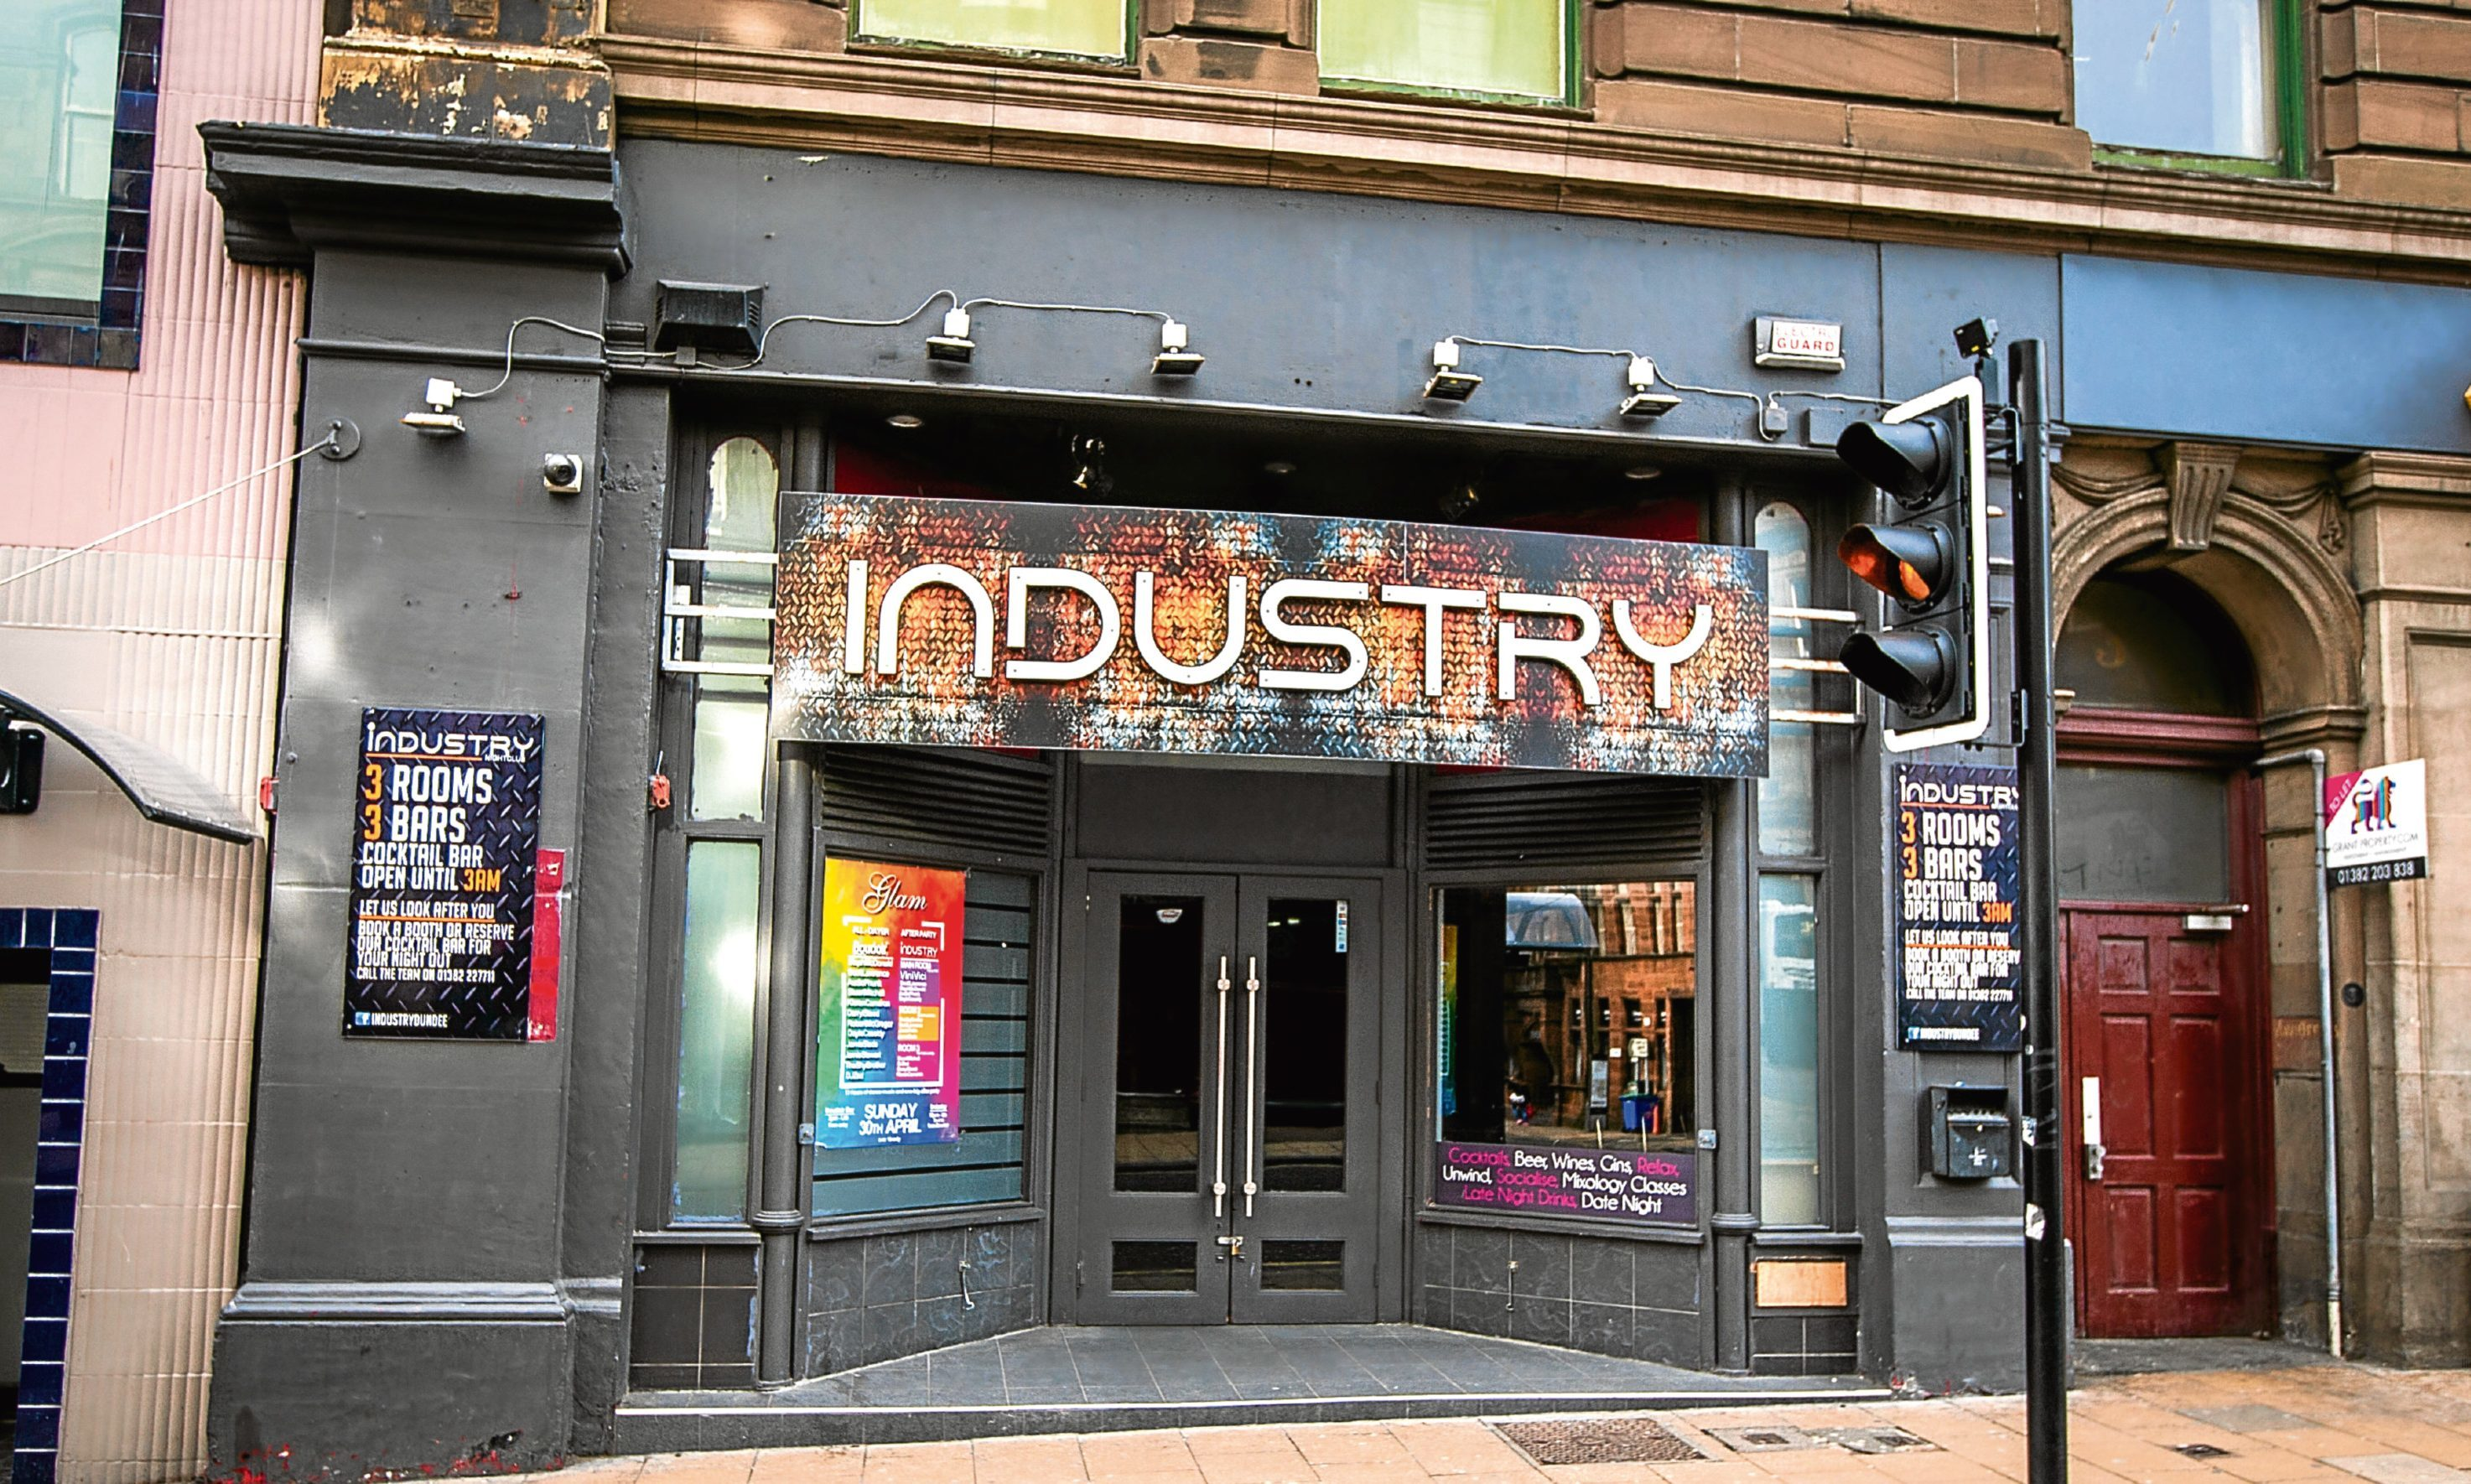 Industry nightclub.